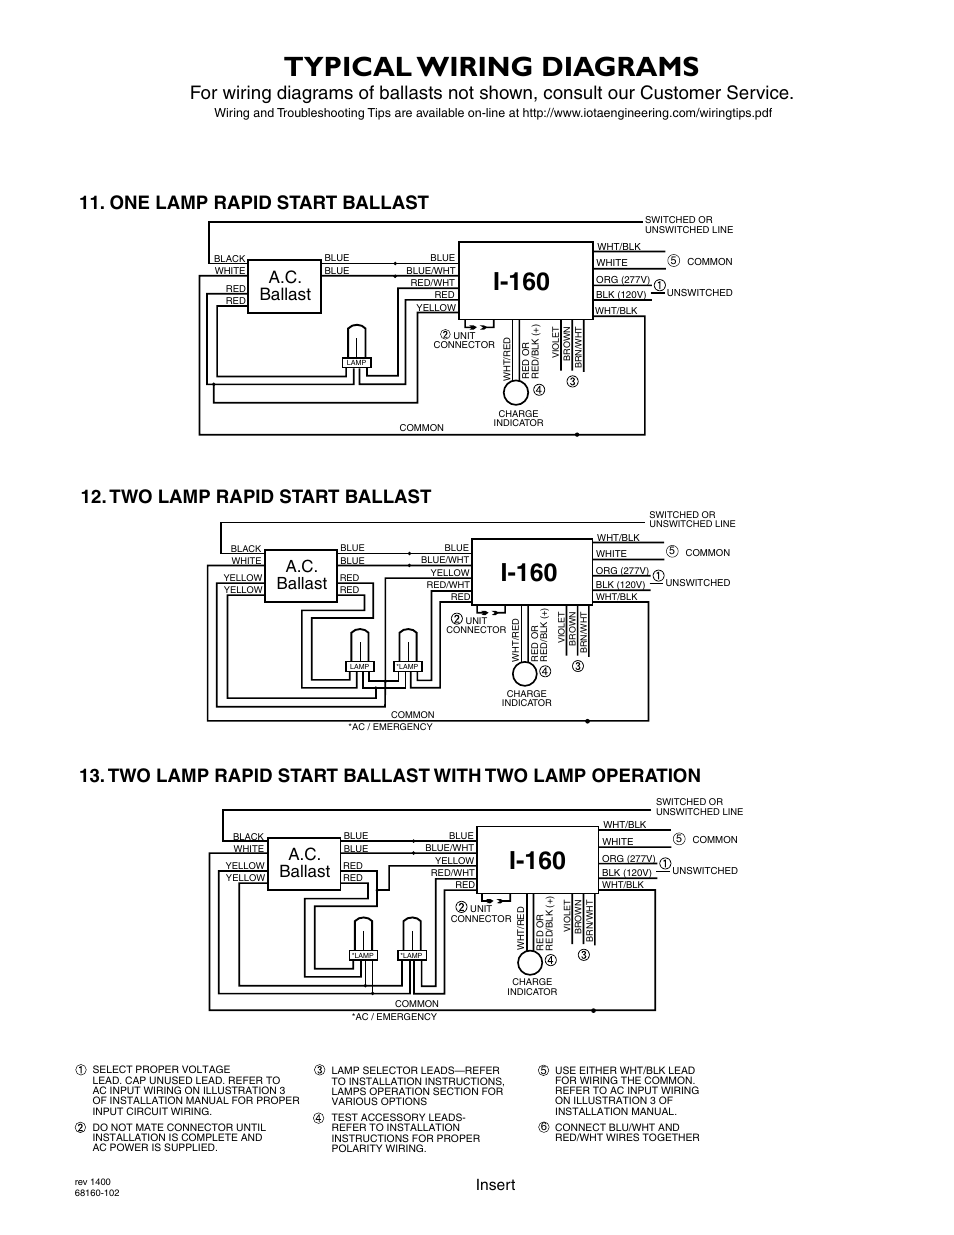 Typical Wiring Diagrams  I